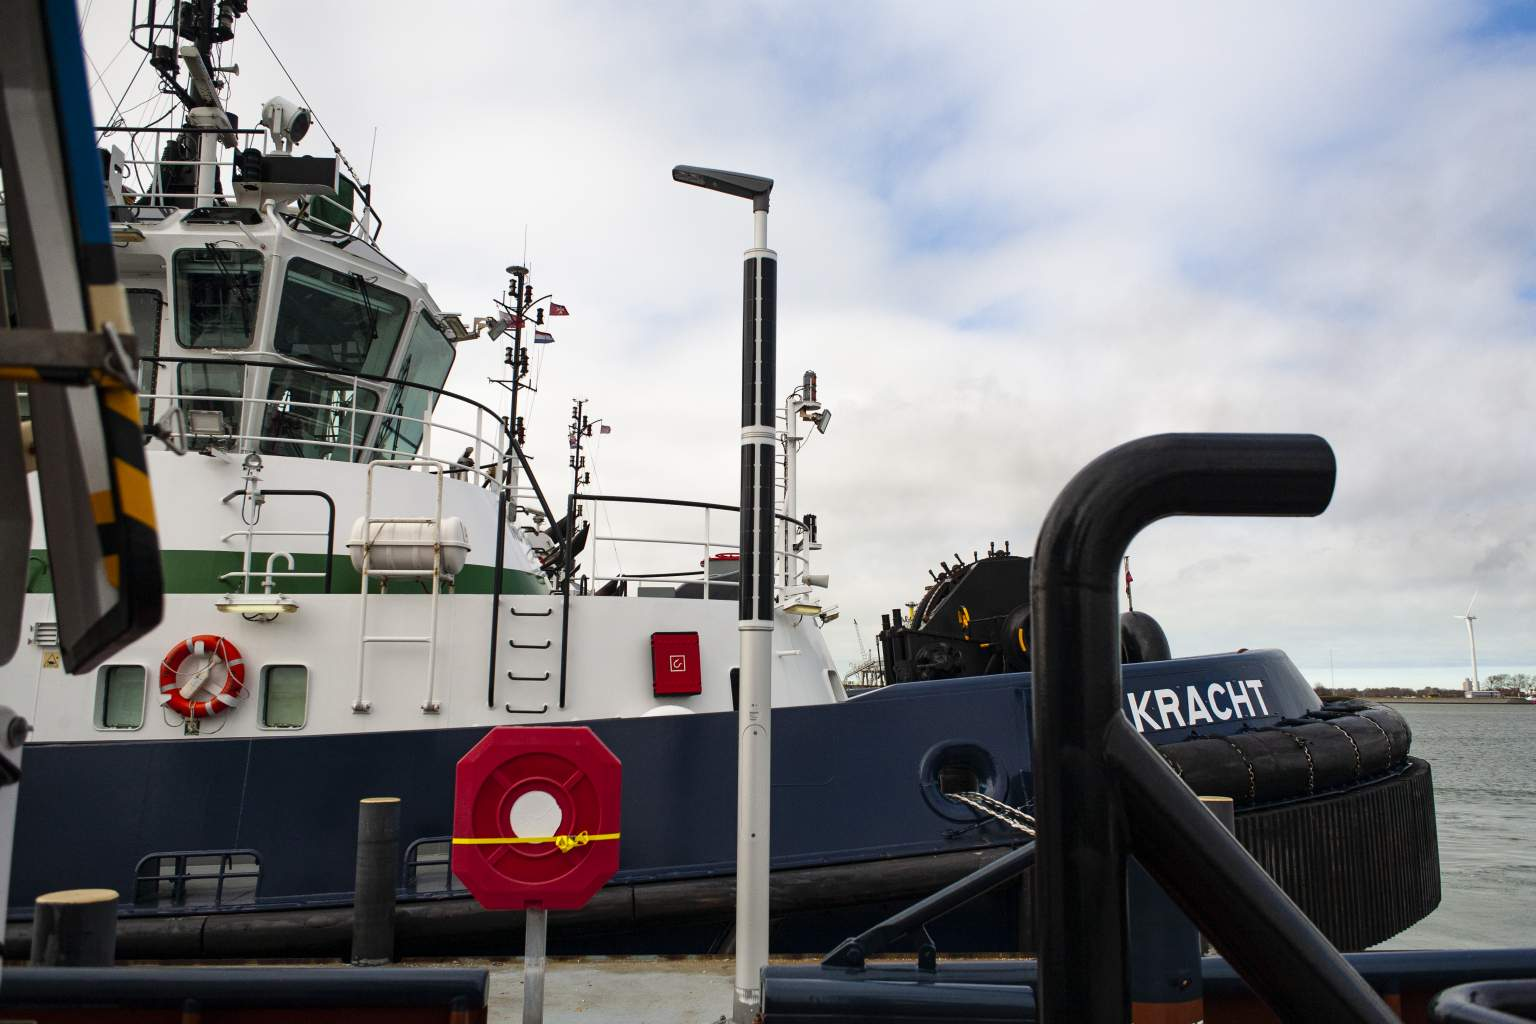 Solar industrial lighting with towing ship